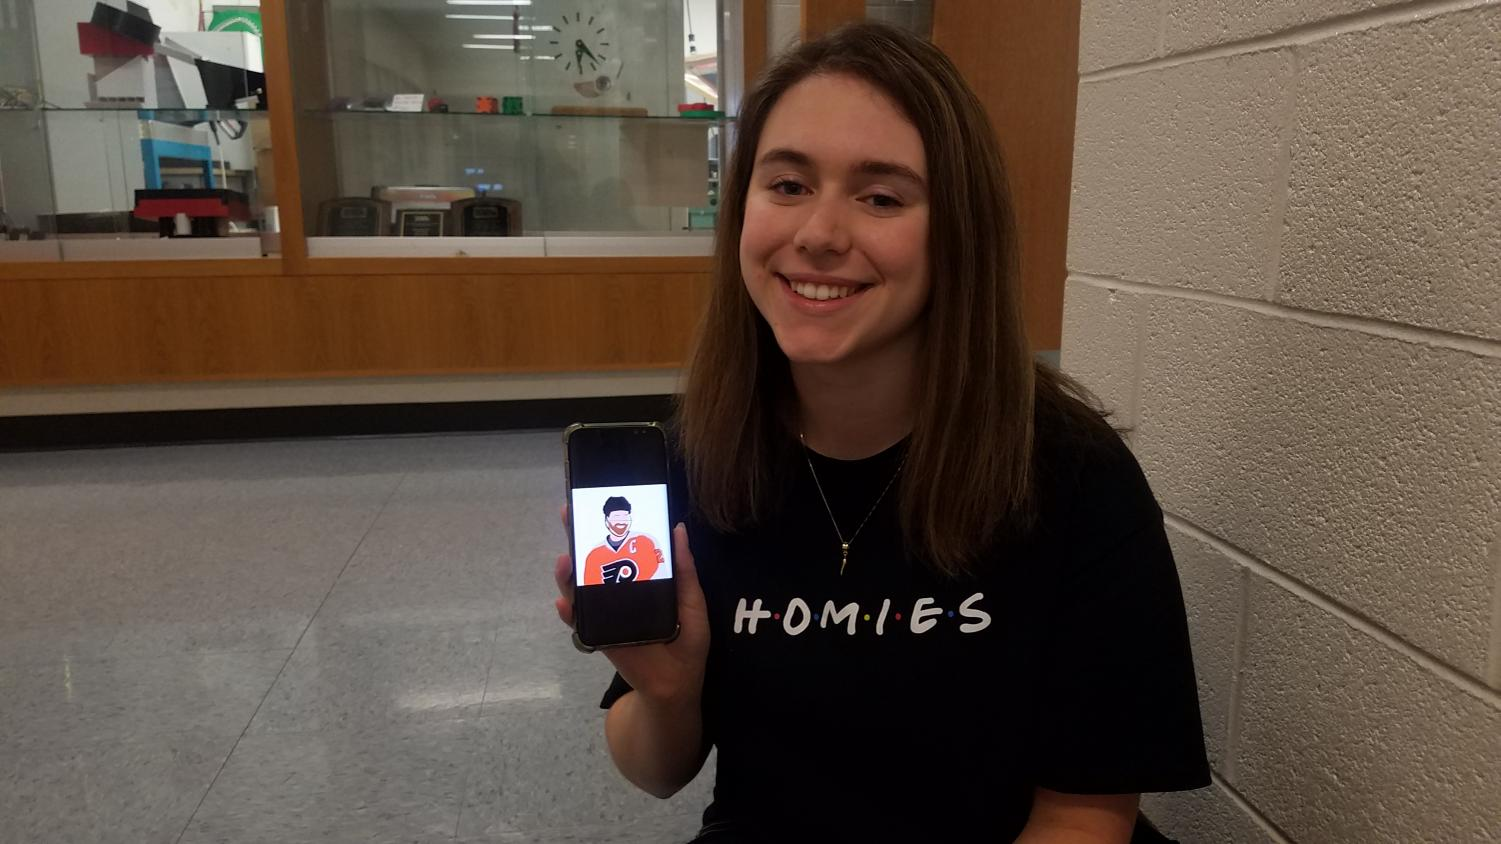 Senior Paige Wenhold, a big Philadelphia Flyers fan, is planning to not only open a Redbubble store, but to also combine sports and art—two topics that seem at odds. Her phone showcases one of her digital pieces that will be available as a sticker soon.